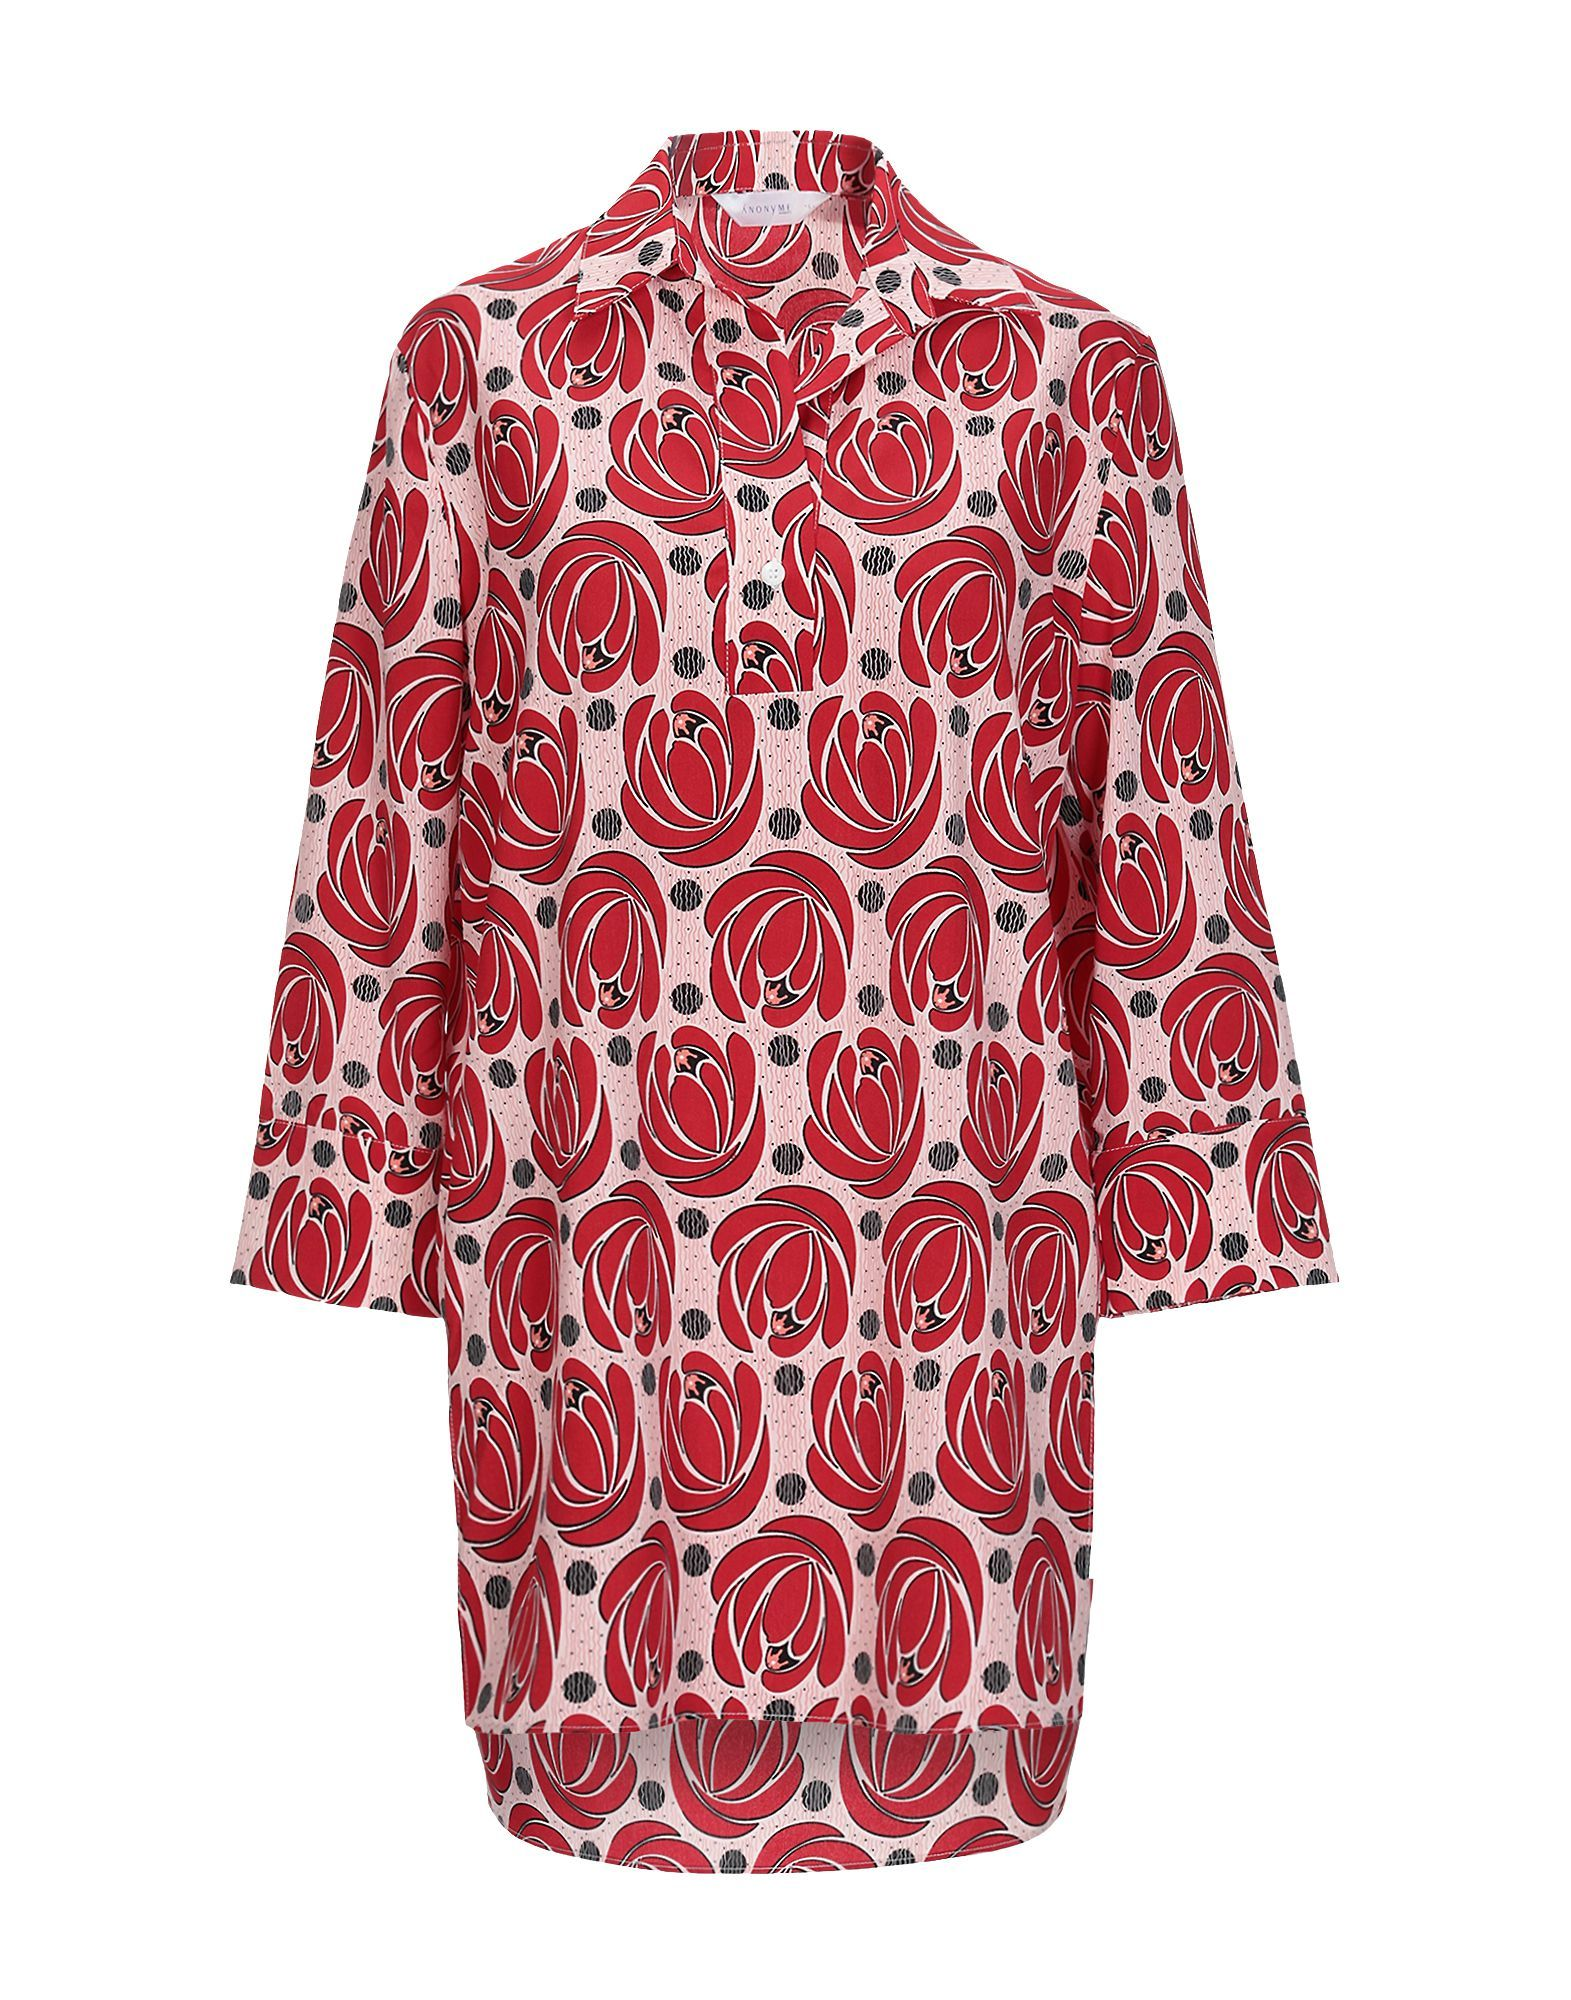 Anonyme Designers Red Print Long Sleeve Blouse